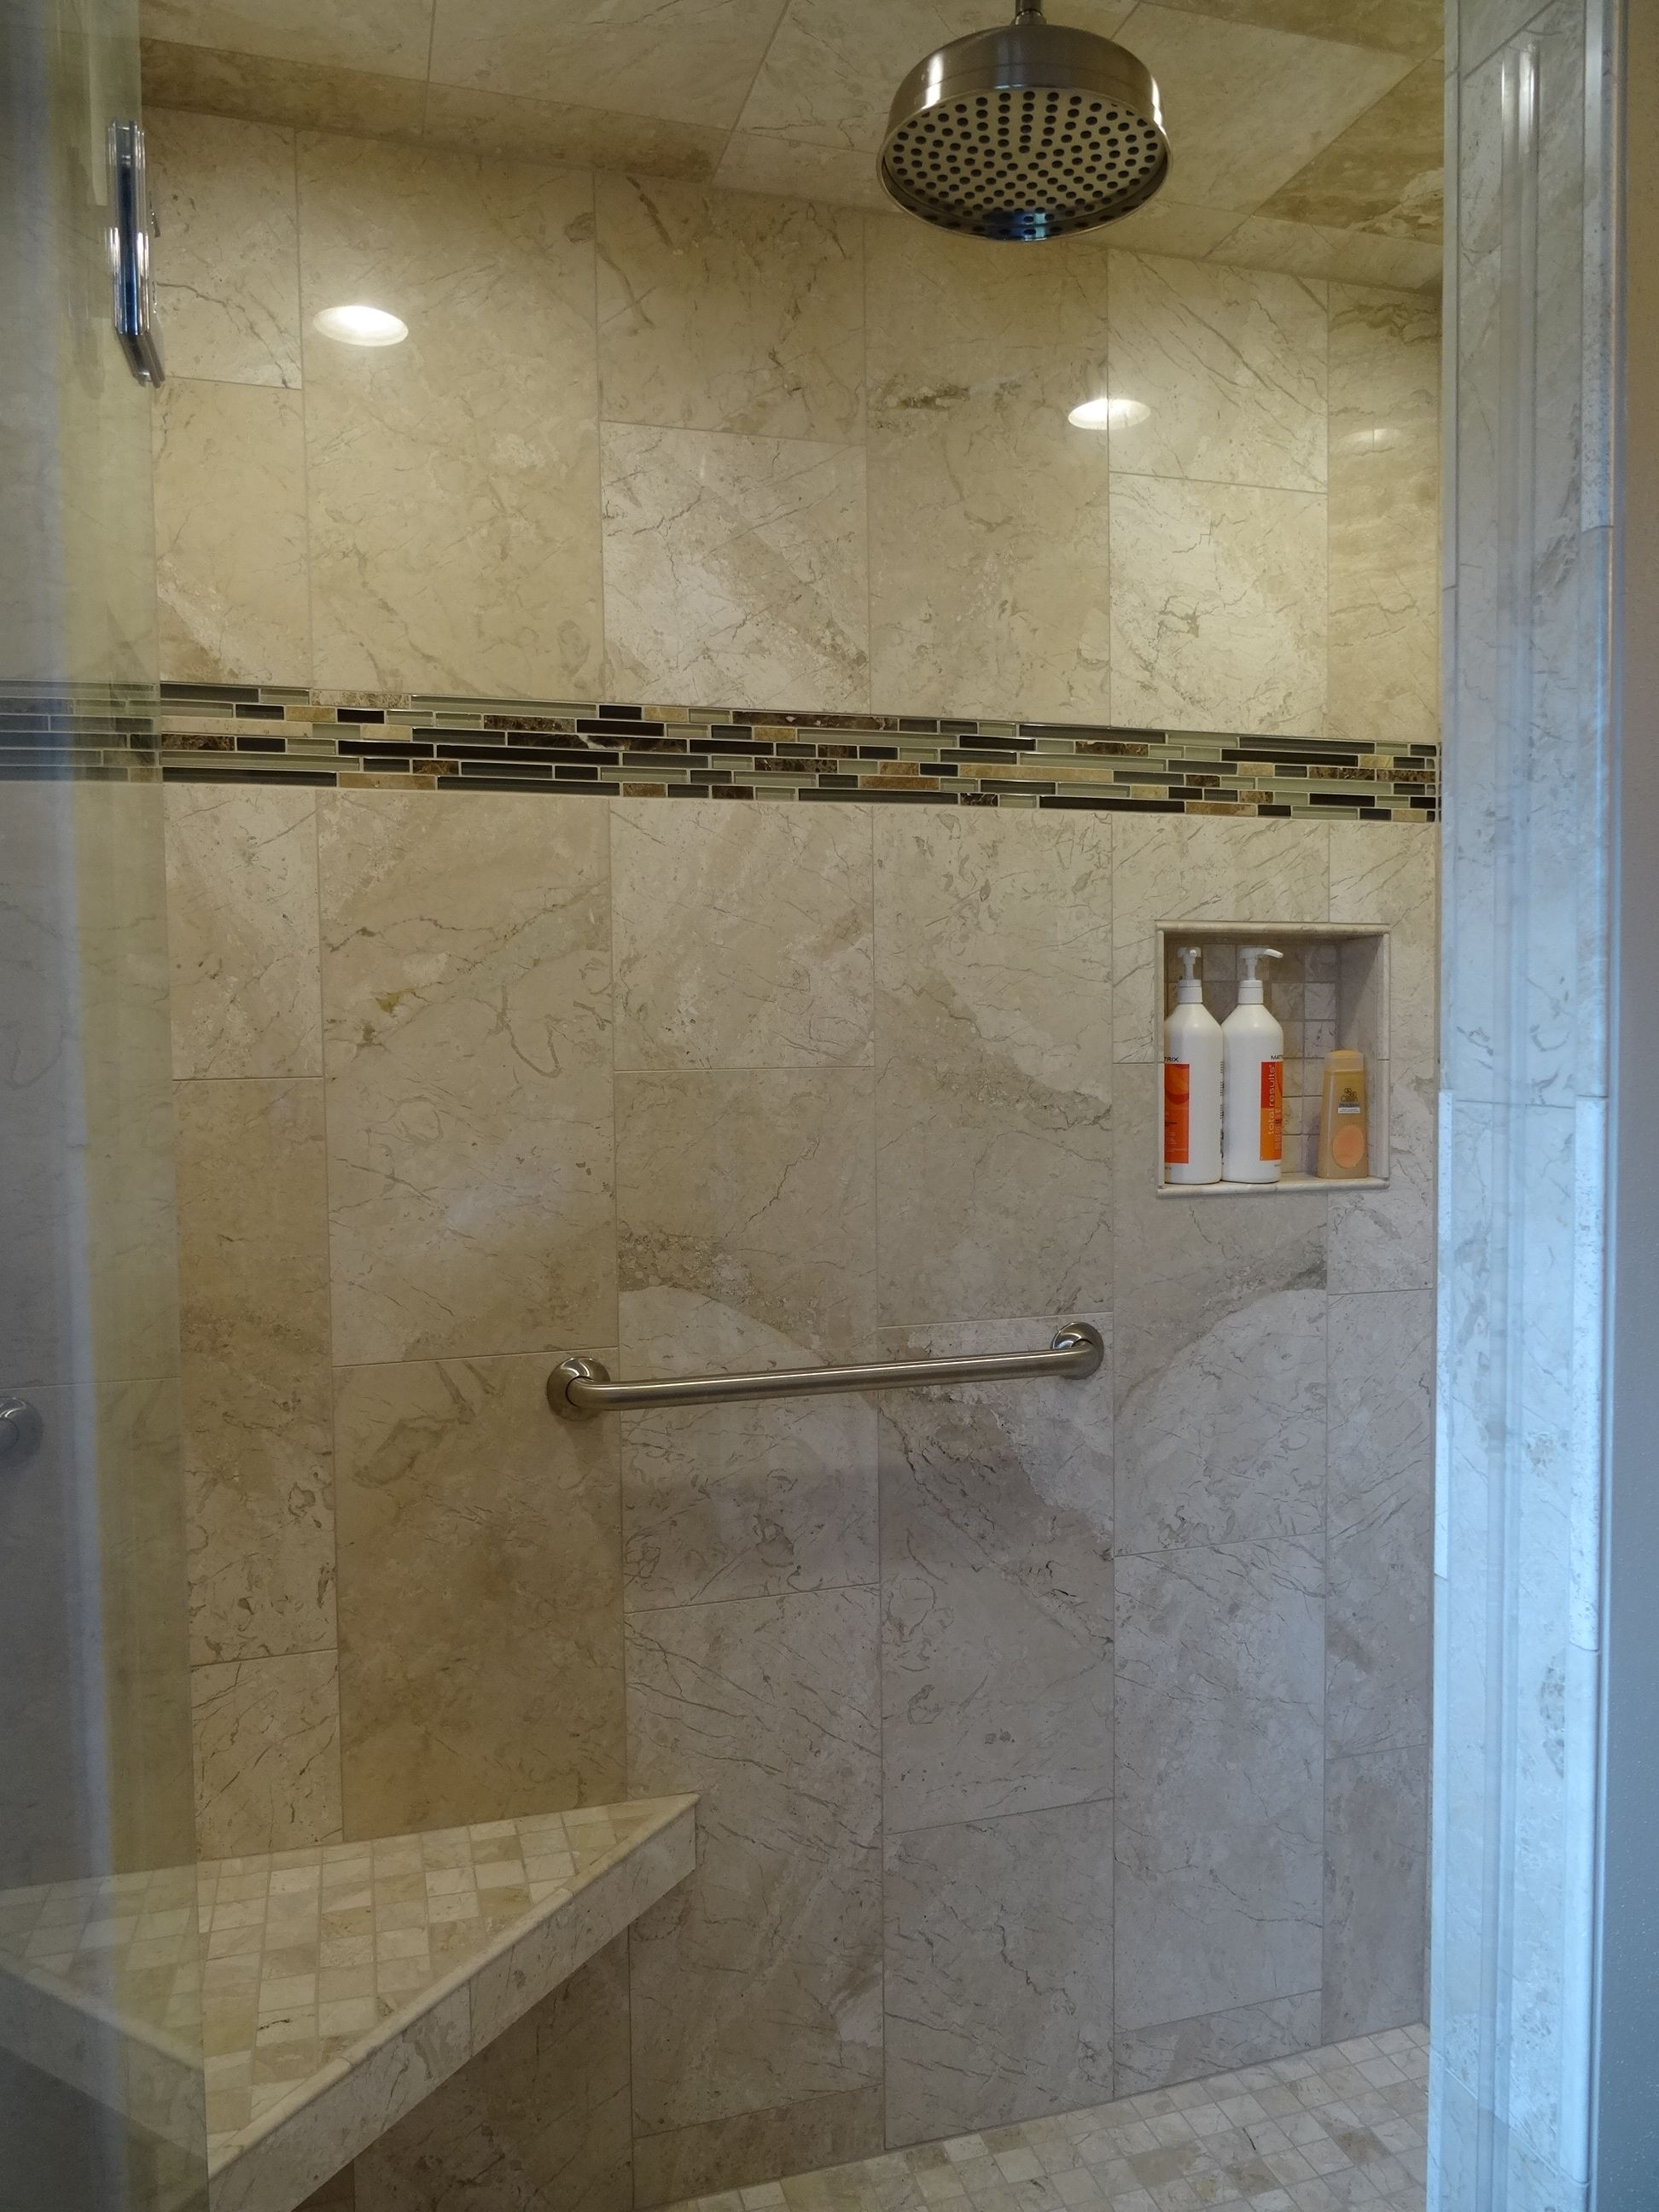 Full tile shower, with raindrop shower head, stainless steel grab ...